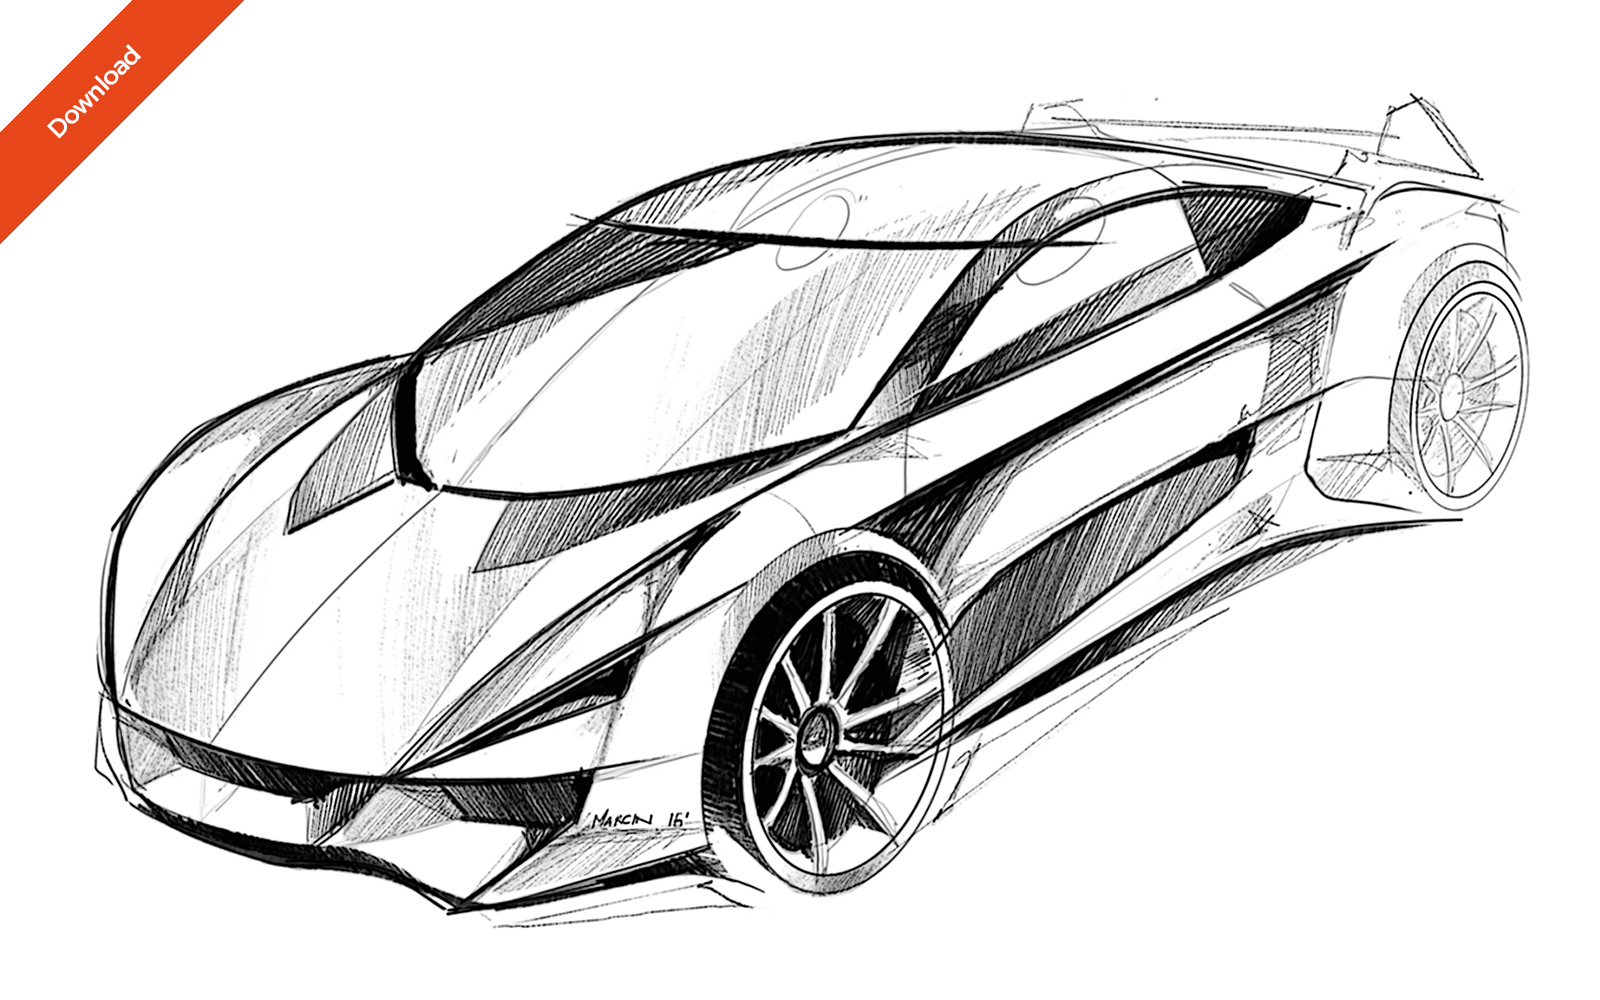 REVIEW: Car Sketches - SET 01 | CarDesignPro on Patreon